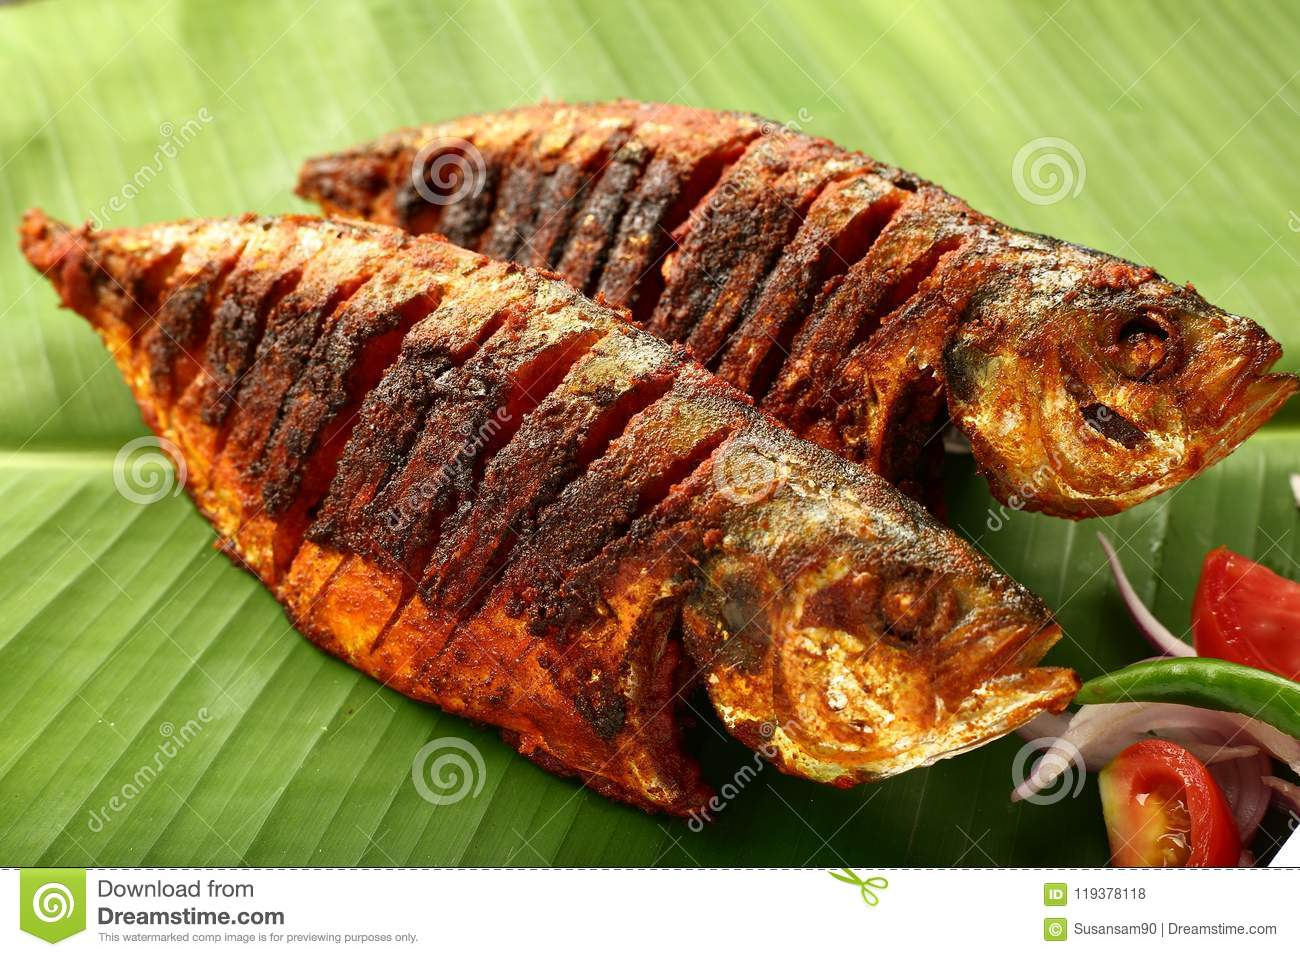 Kerala food delicious fish fry authentic recipe stock photo download comp forumfinder Gallery